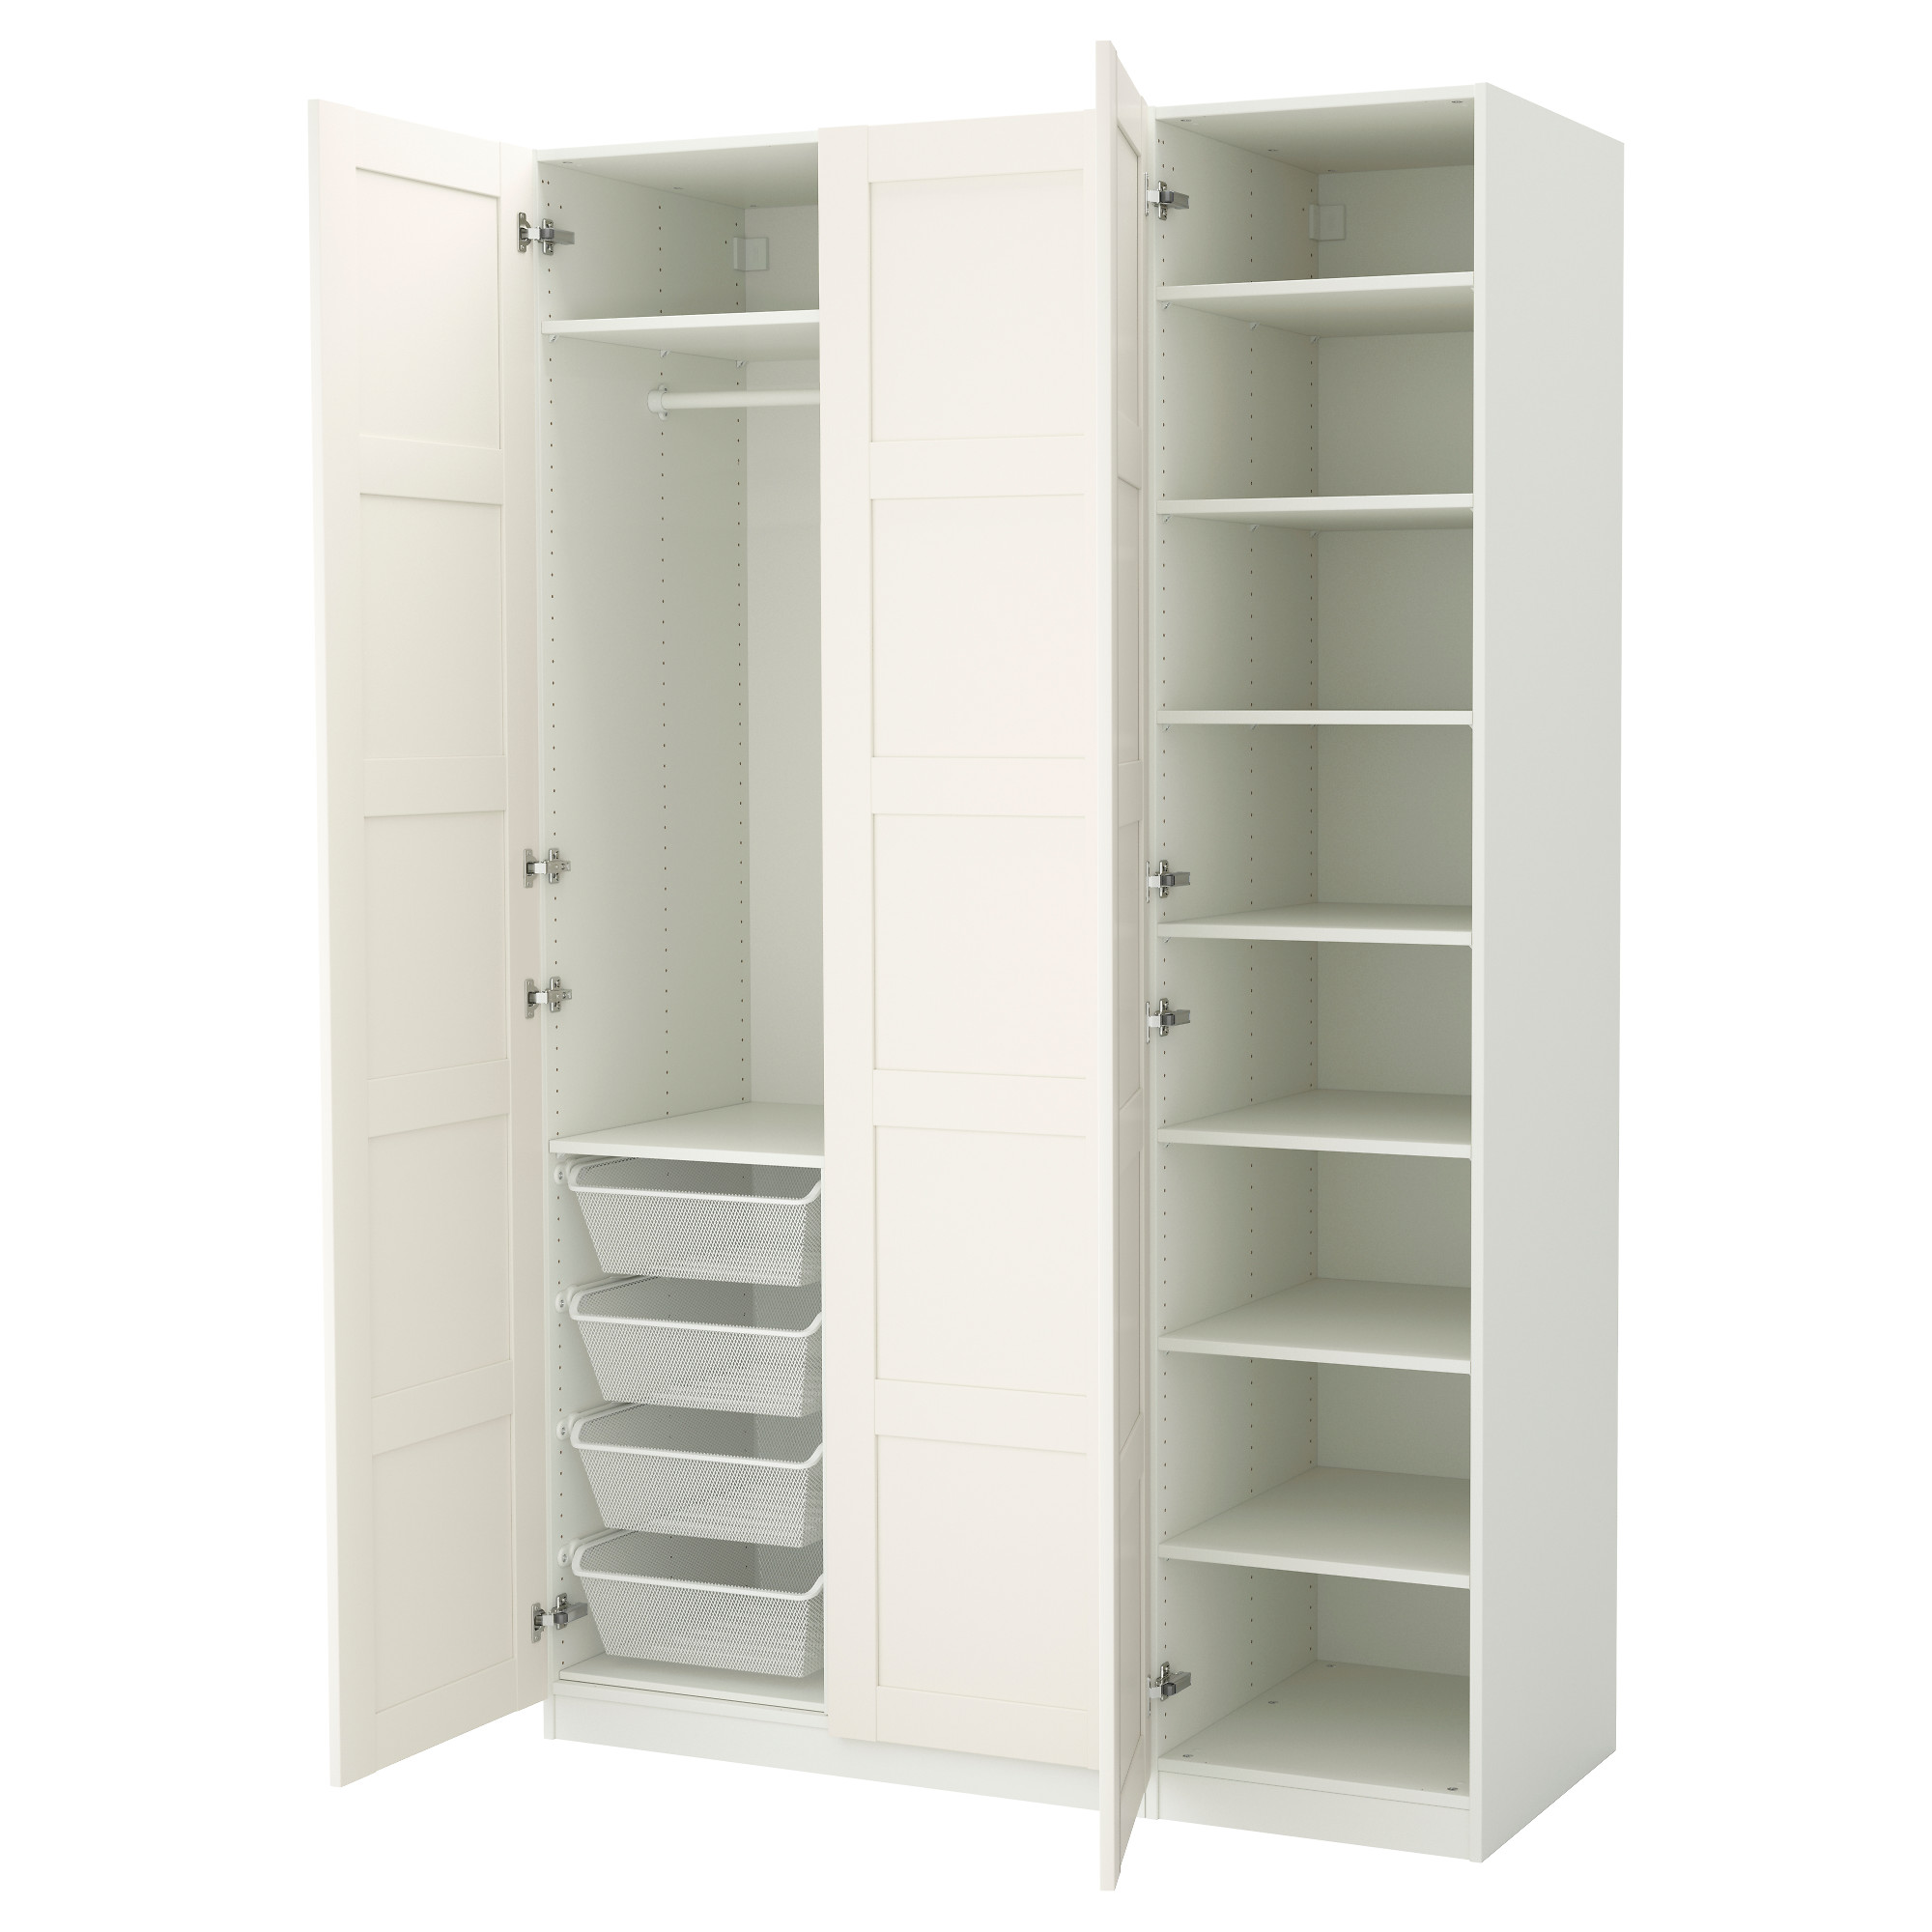 Ikea Wardrobe | Ikea Wardrobe Assembly Service | Ikea Wardrobe with Mirror